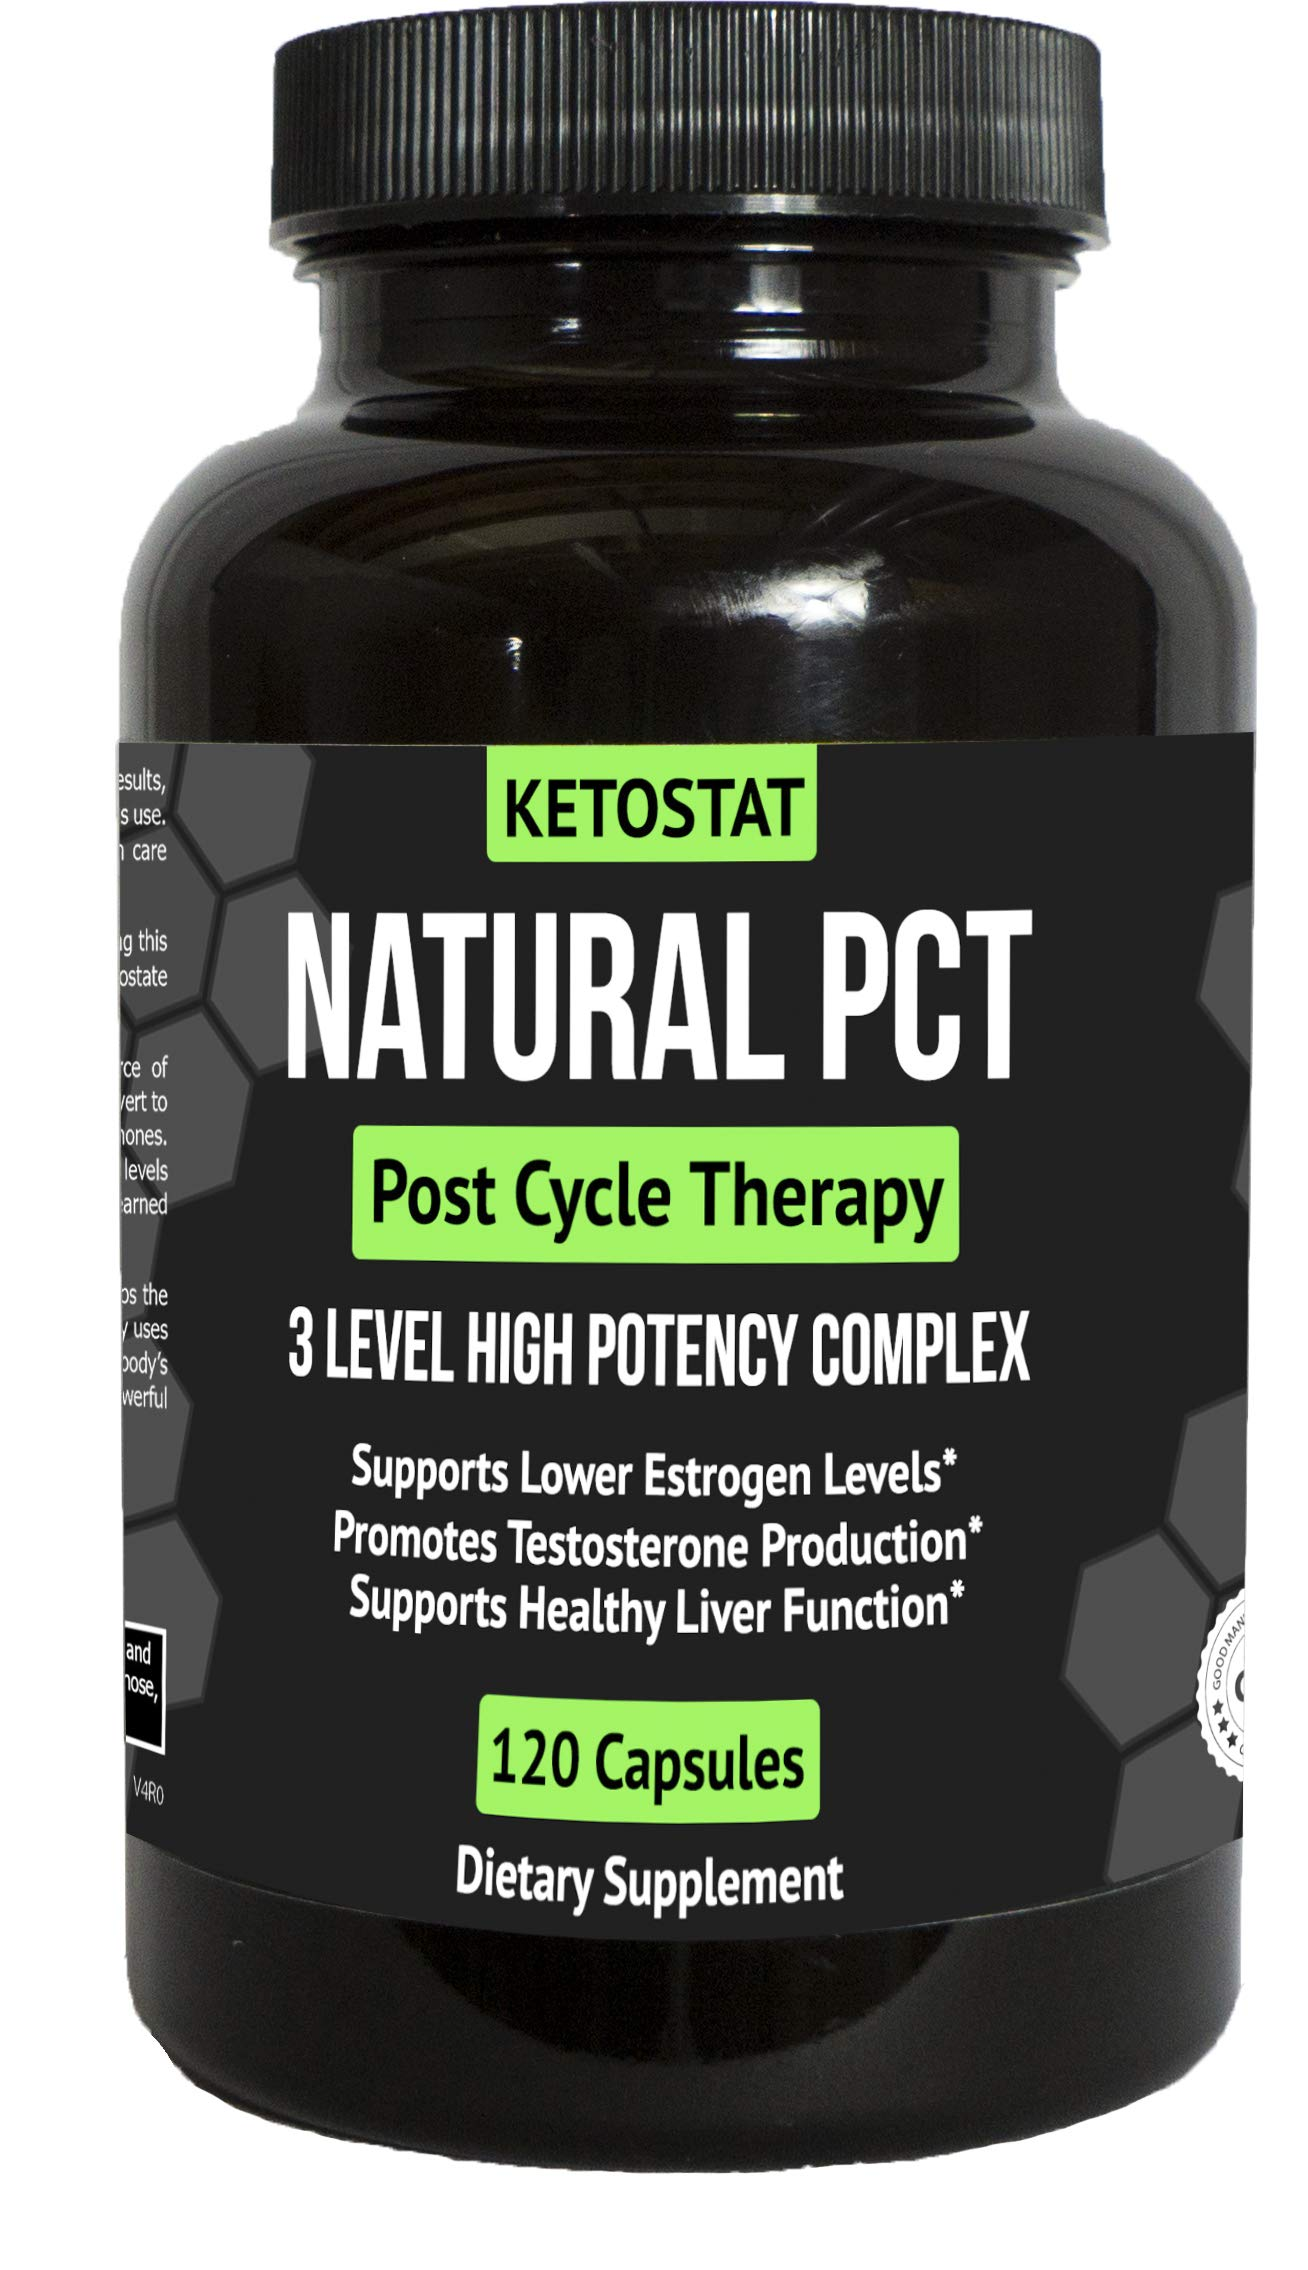 60 Day Clinical Grade Post Cycle Therapy Supplement for PCT Support for Men | Potent 3-in-1 PCT Supplement with Estrogen Blockers, Testosterone Booster, Liver Support and Boosts Libido by Ketostat